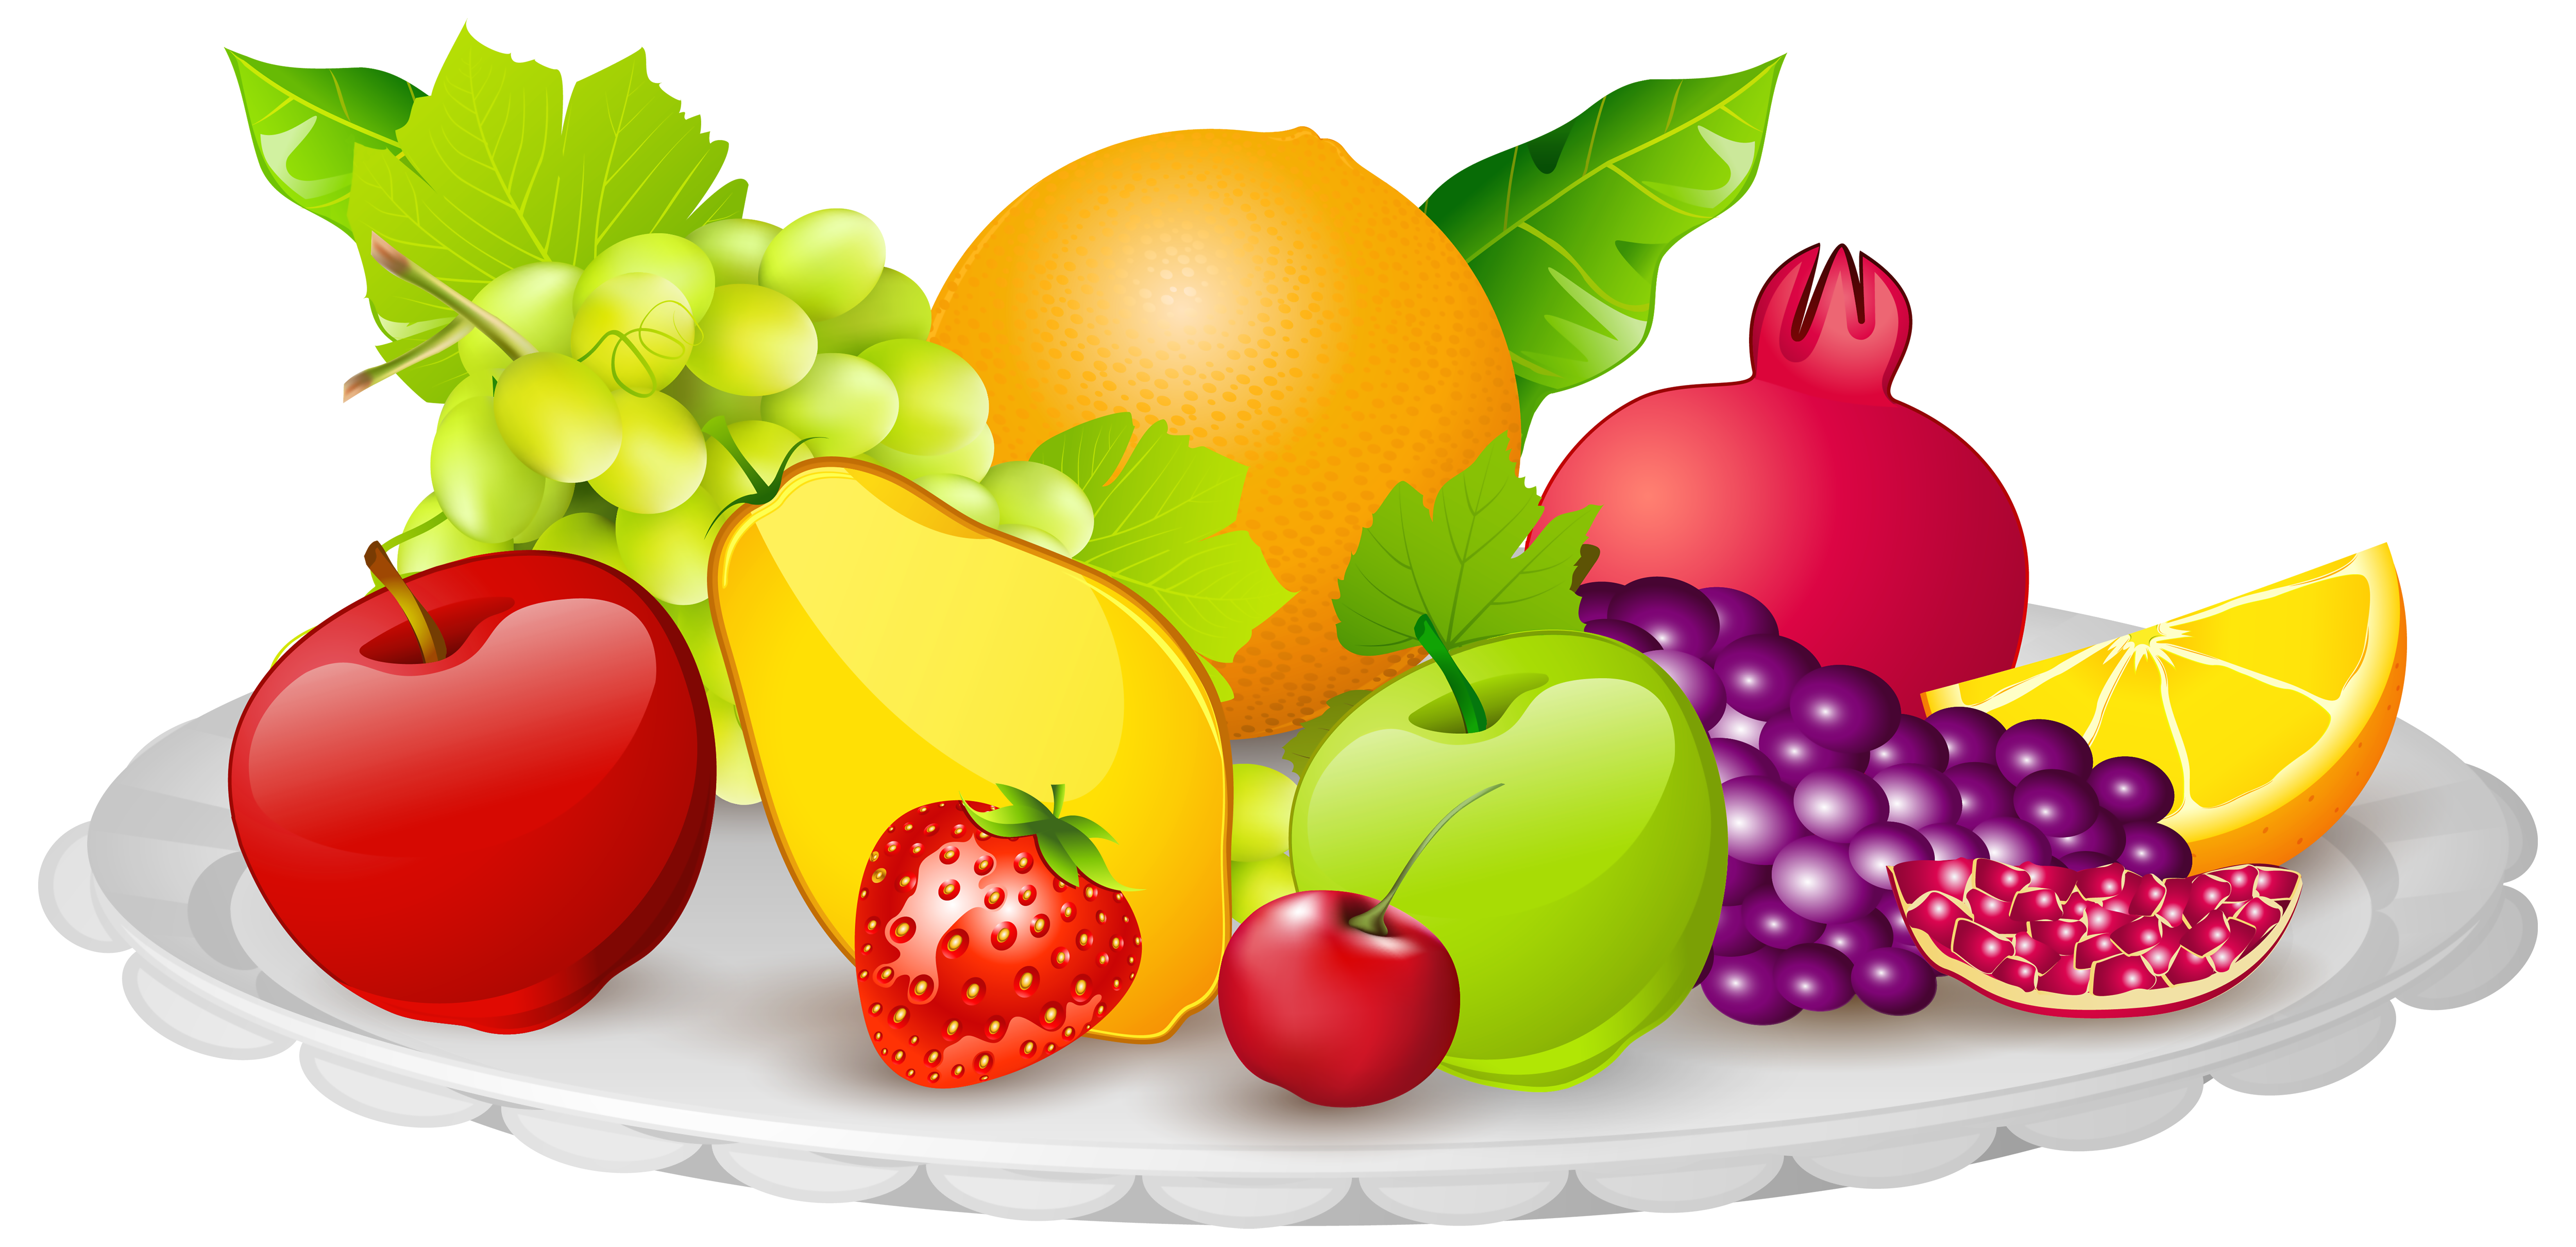 clip library stock Plate with png image. Fruits clipart